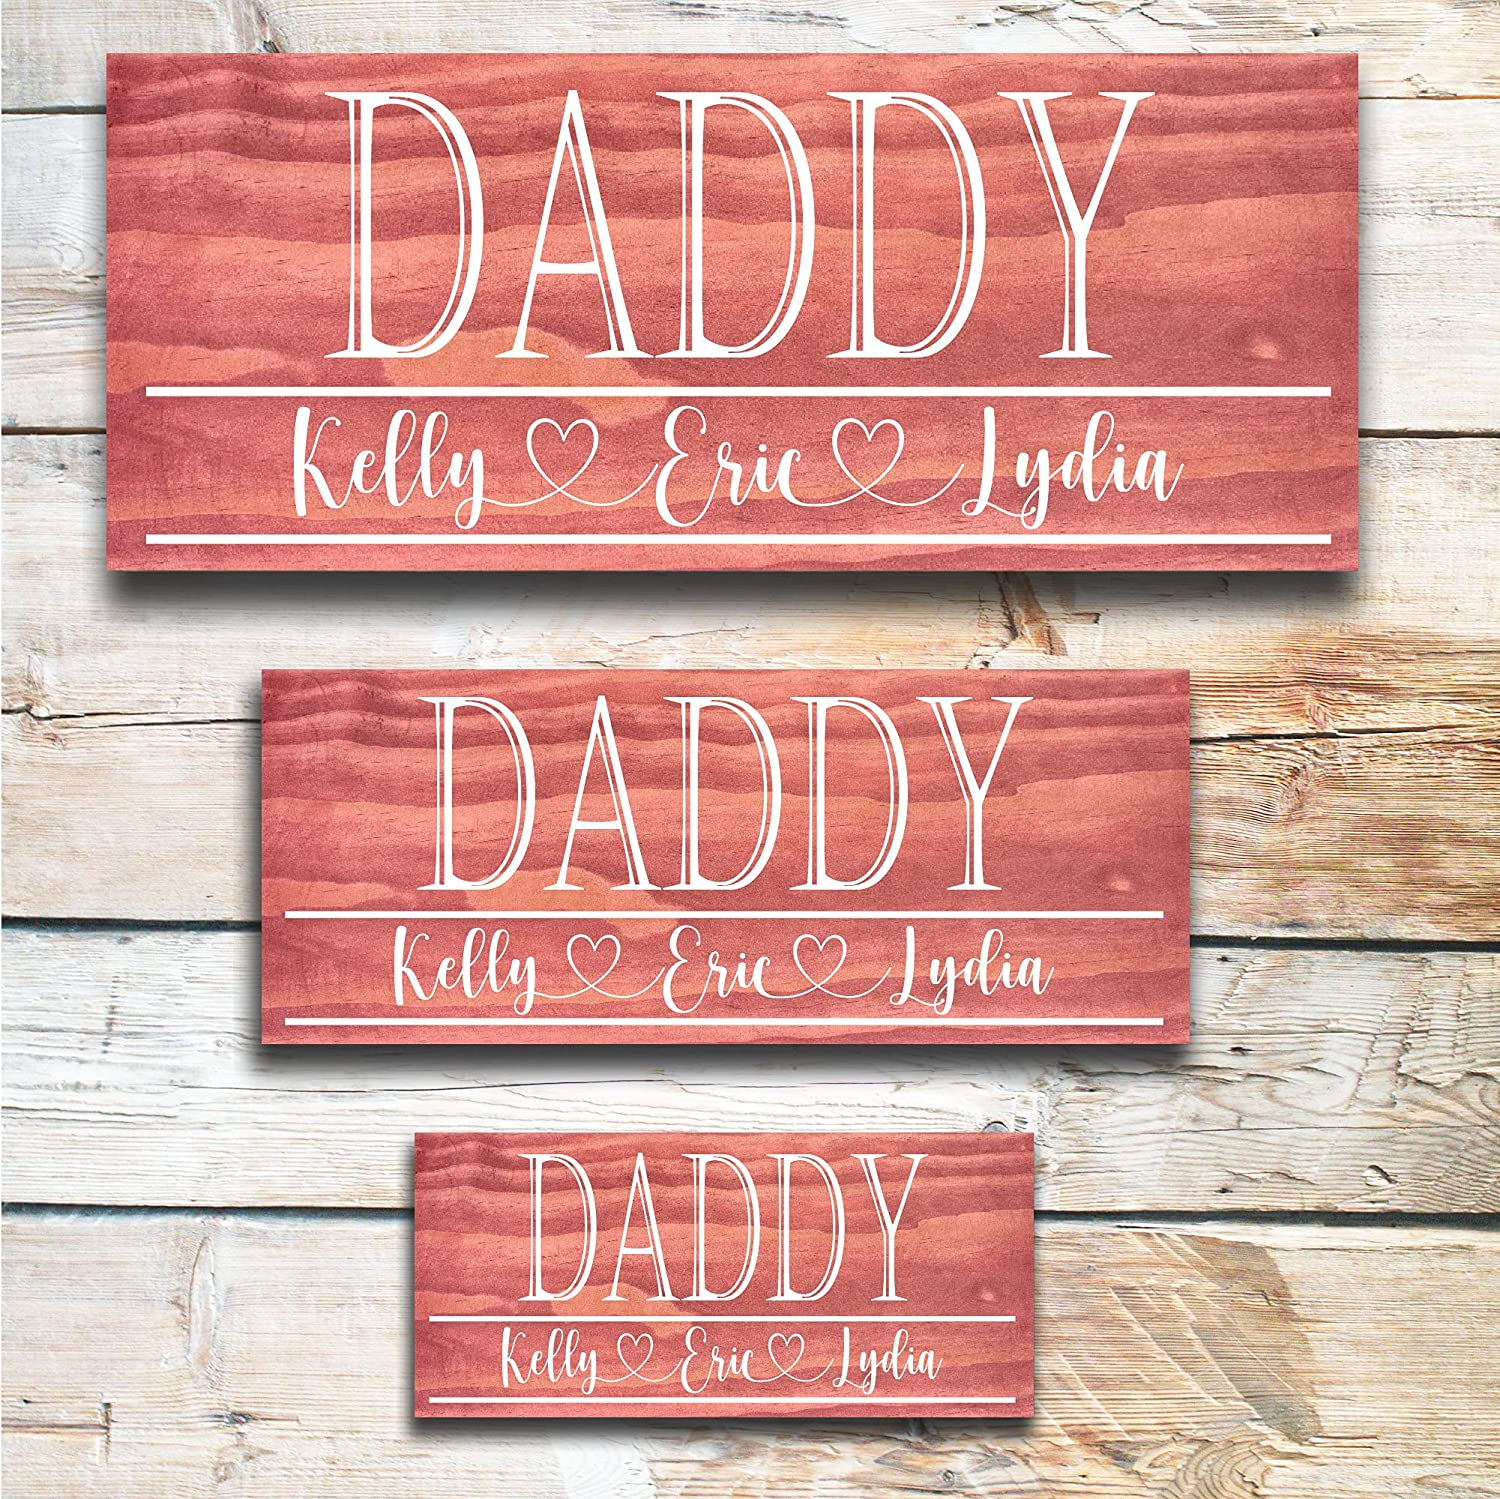 Daddy Great Outlet ☆ Free Shipping Manufacturer OFFicial shop Father's Day Personalized Gift Ideas Dad